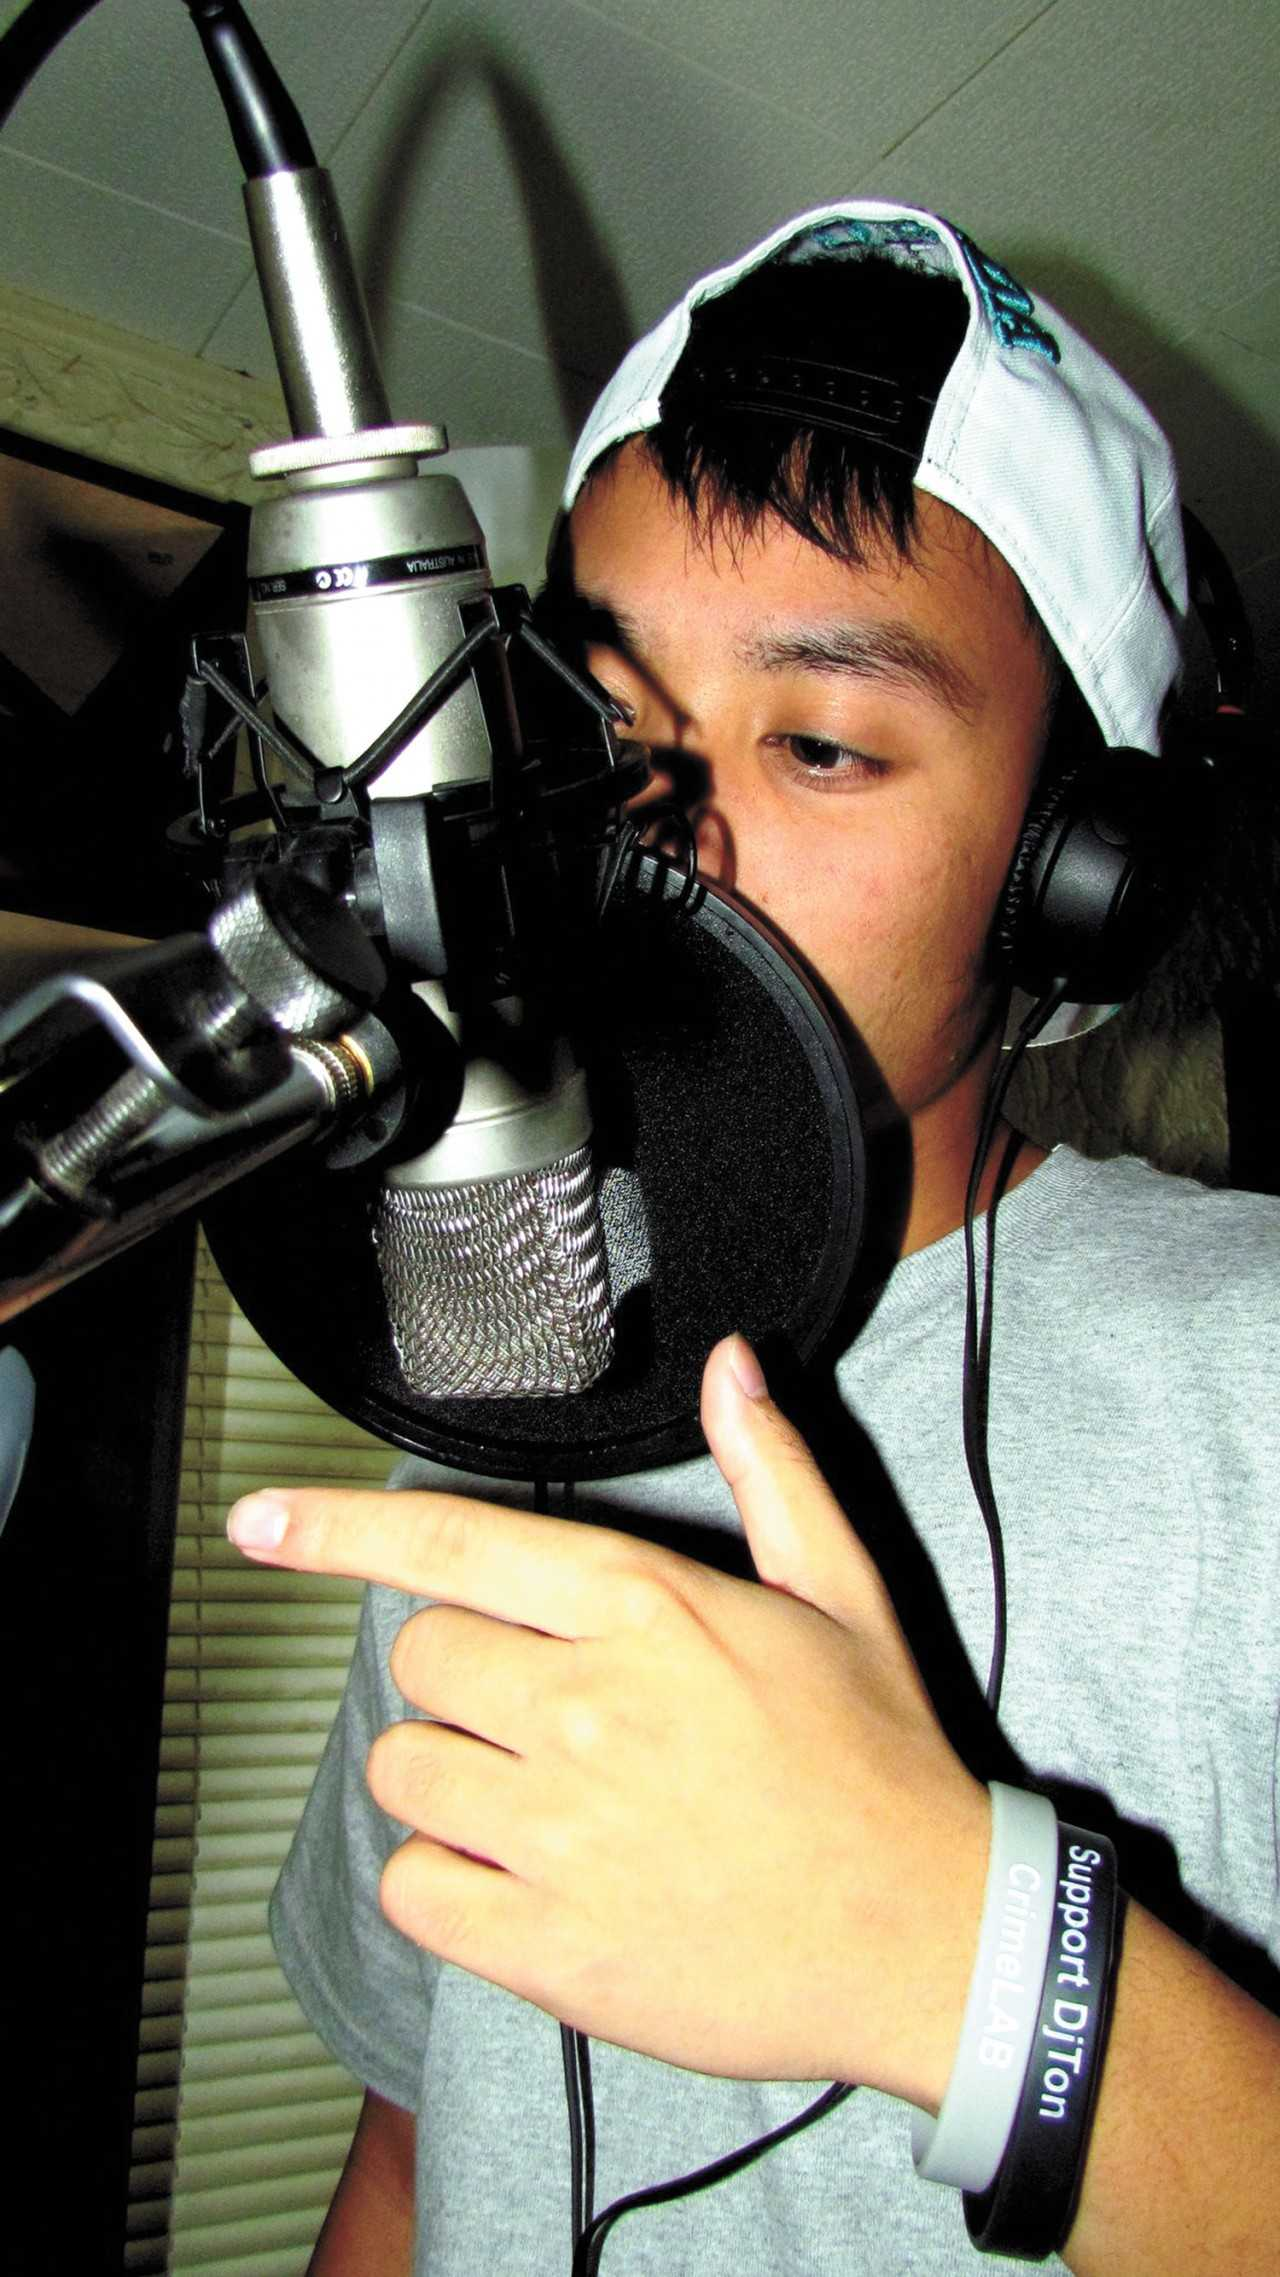 Nguyen designs life around his music artistic talents